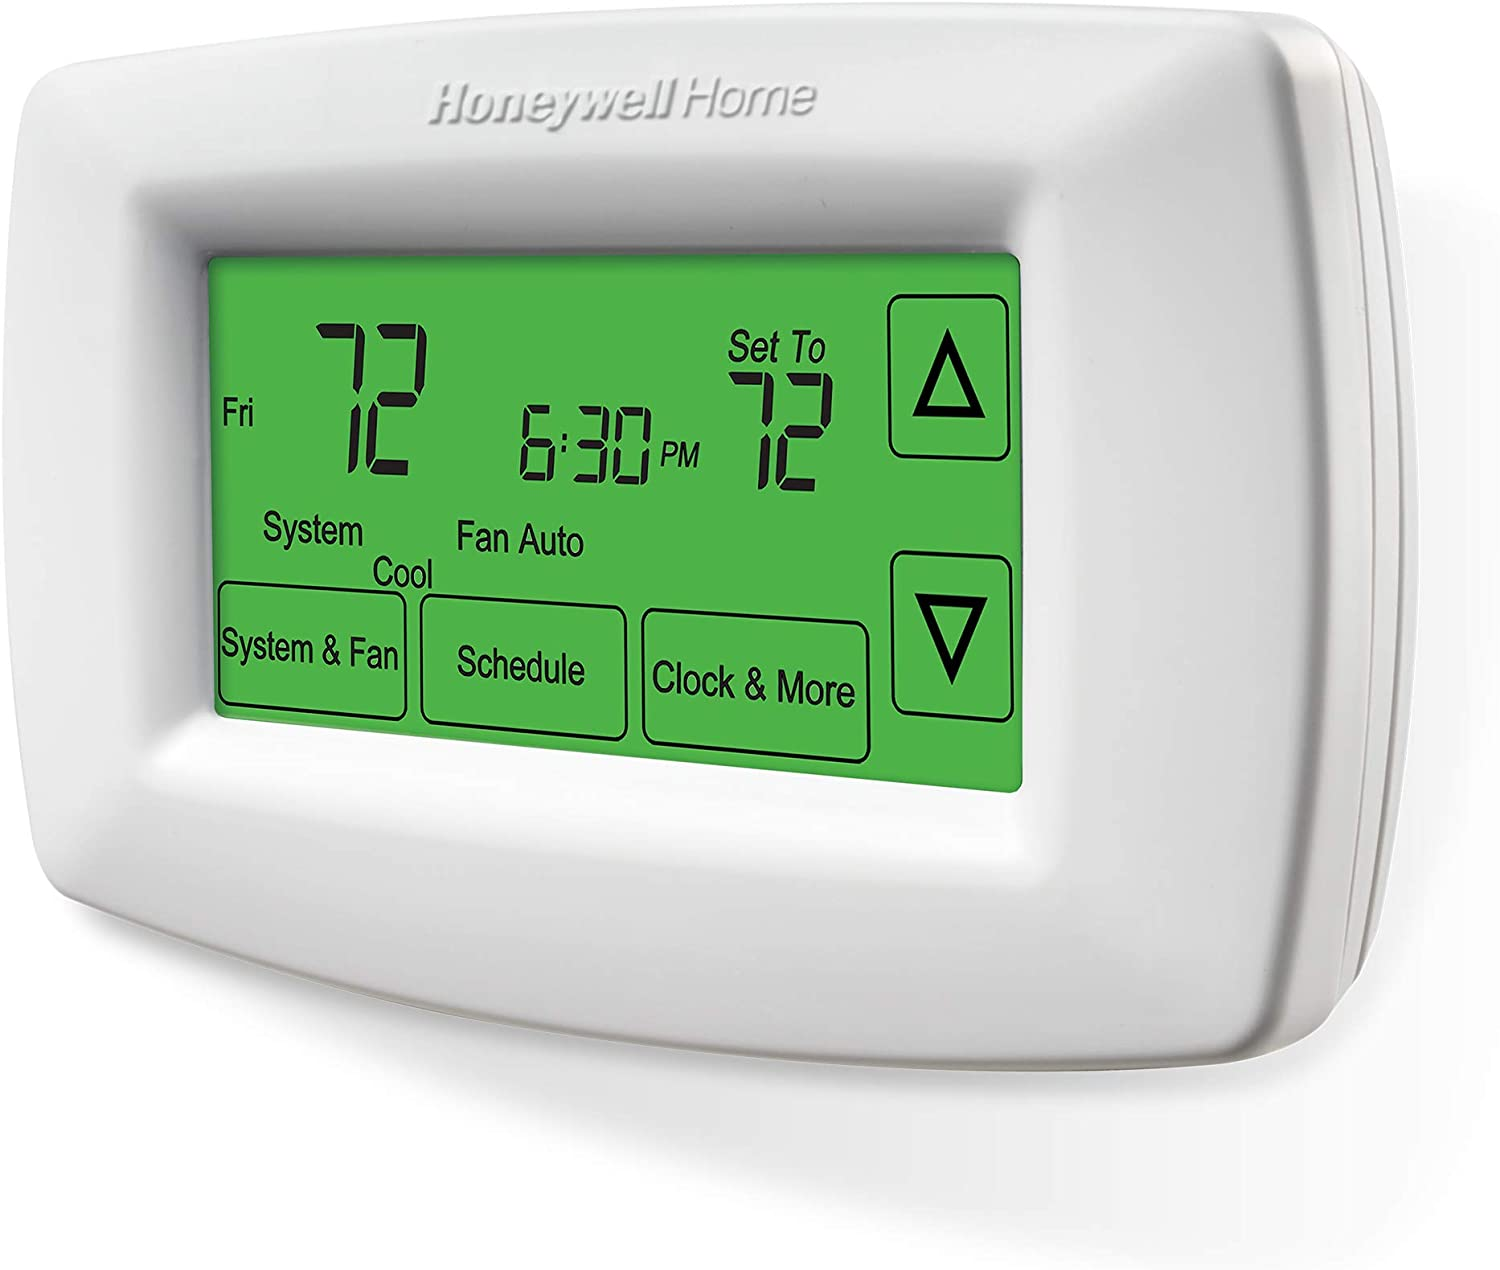 Programmable Thermostat White Free App WiFi 7 Day Programming Backlit Display